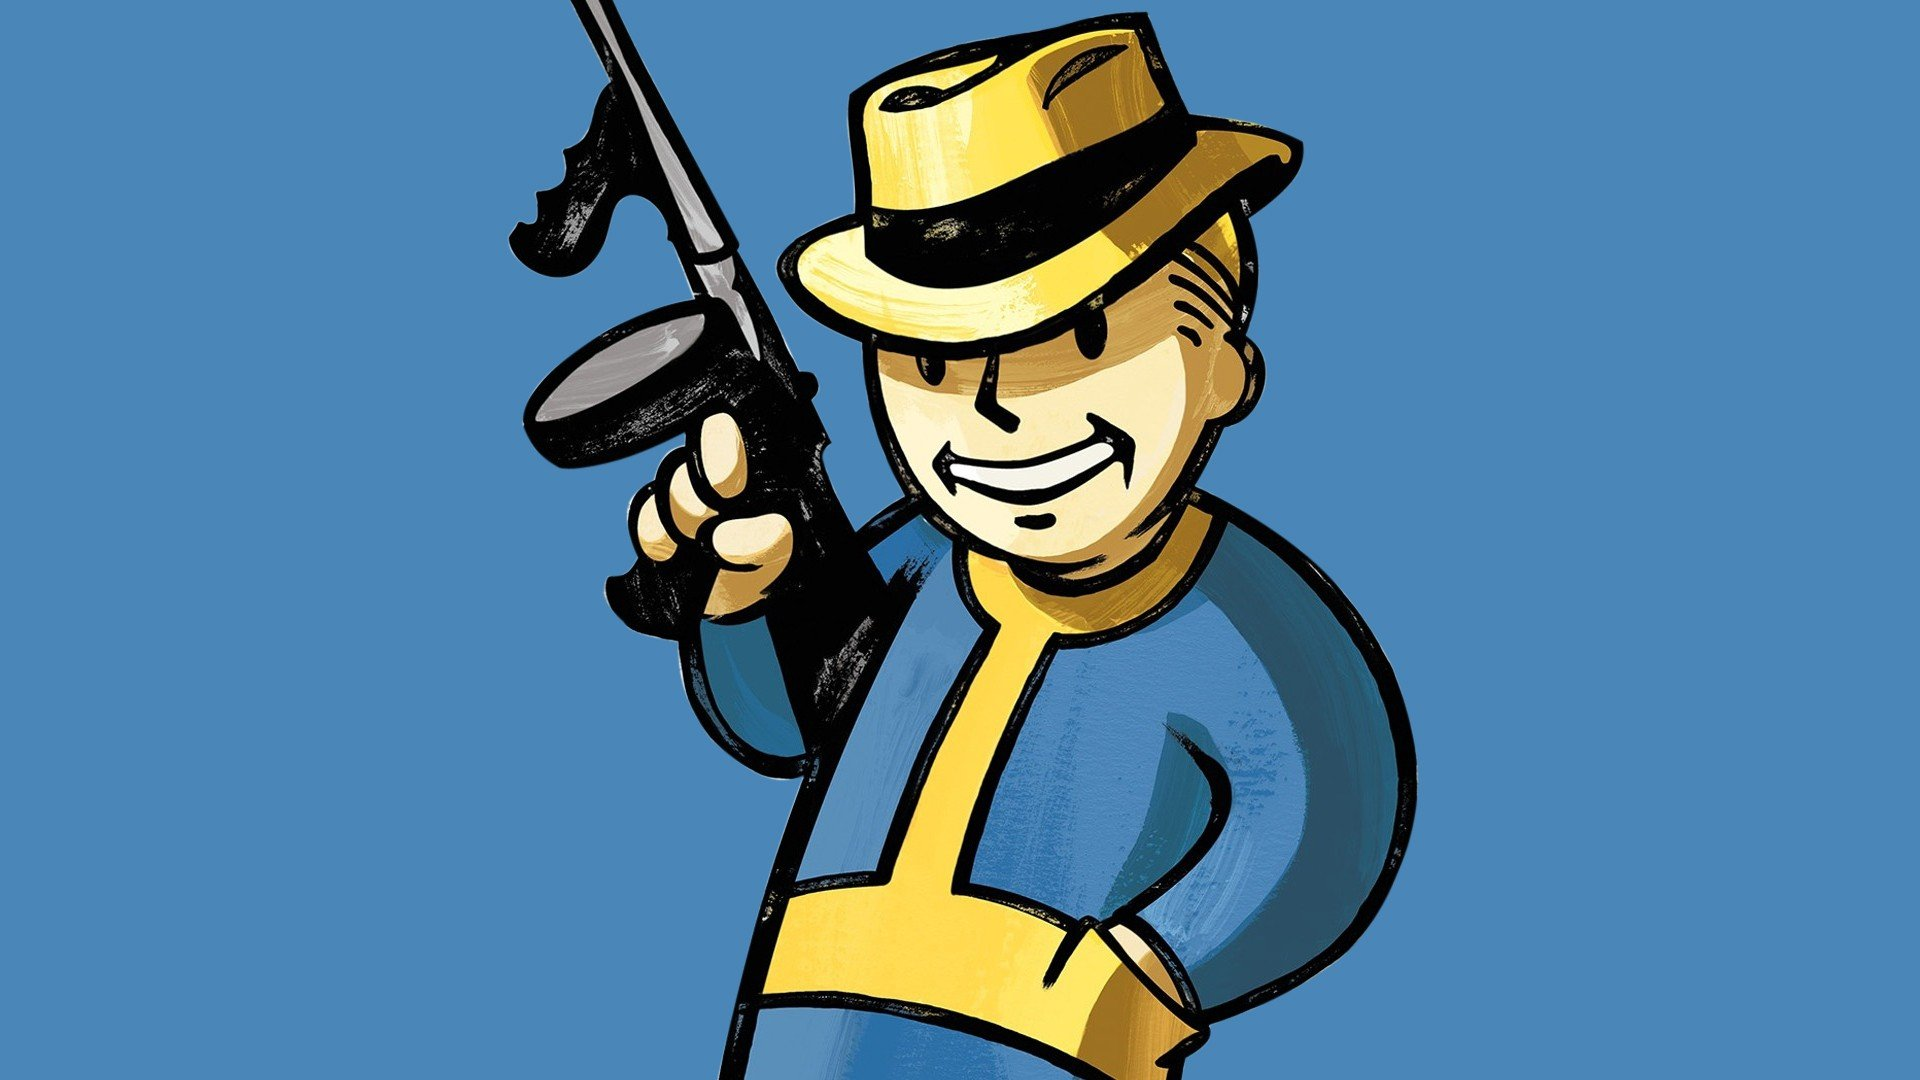 Video Games Minimalistic Fallout Bethesda Softworks Pip Boy Role Playing Game Wallpaper